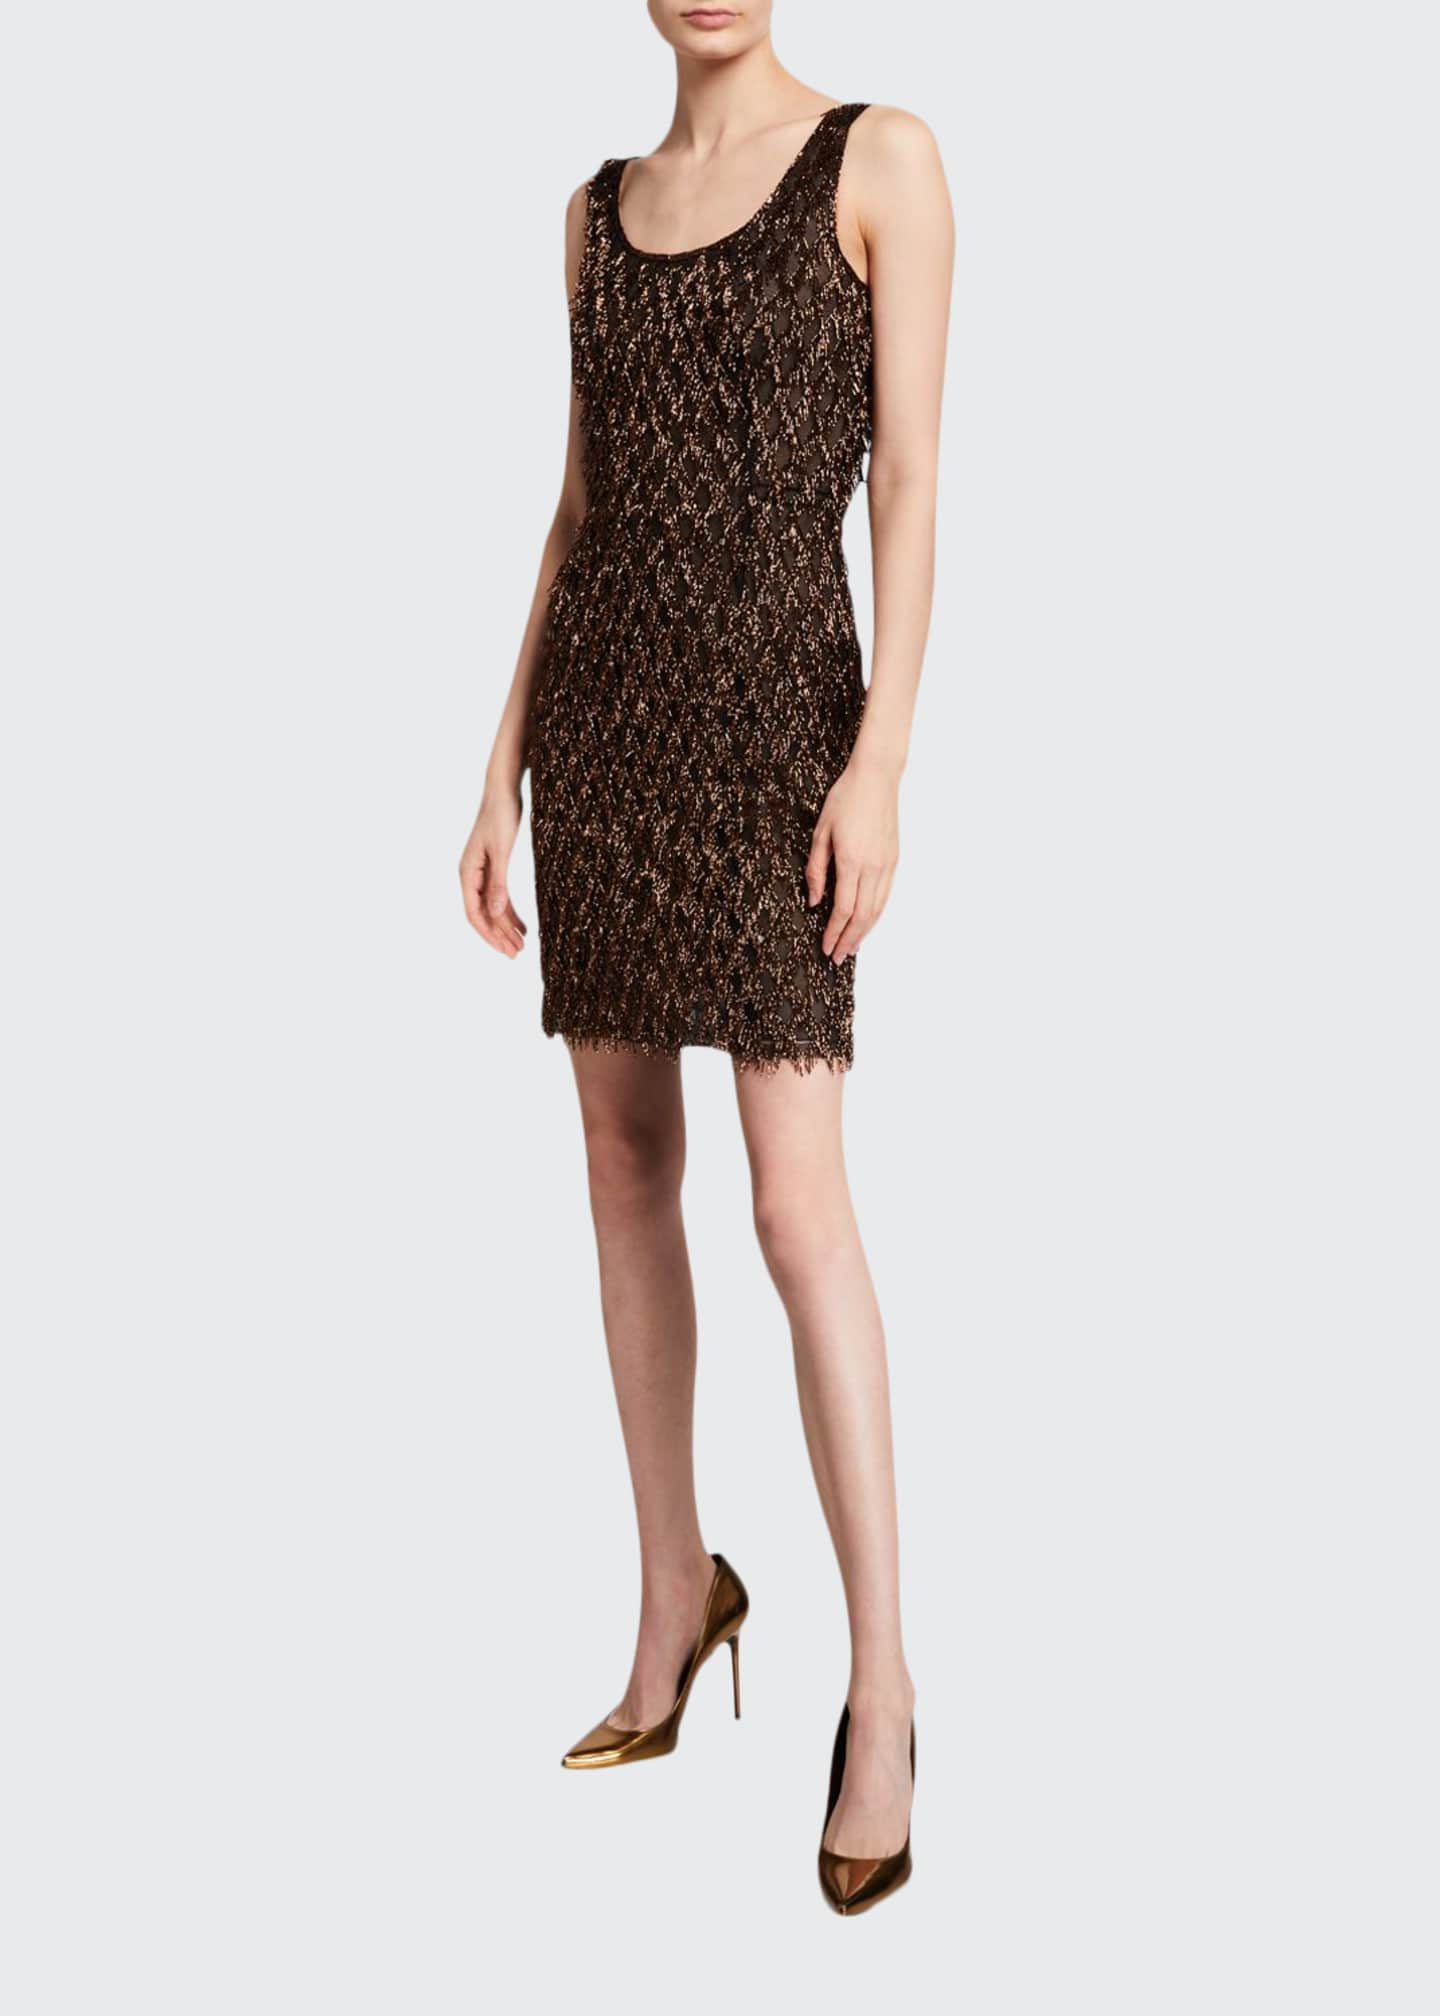 J. Mendel Metallic Striped-Mesh Cocktail Dress